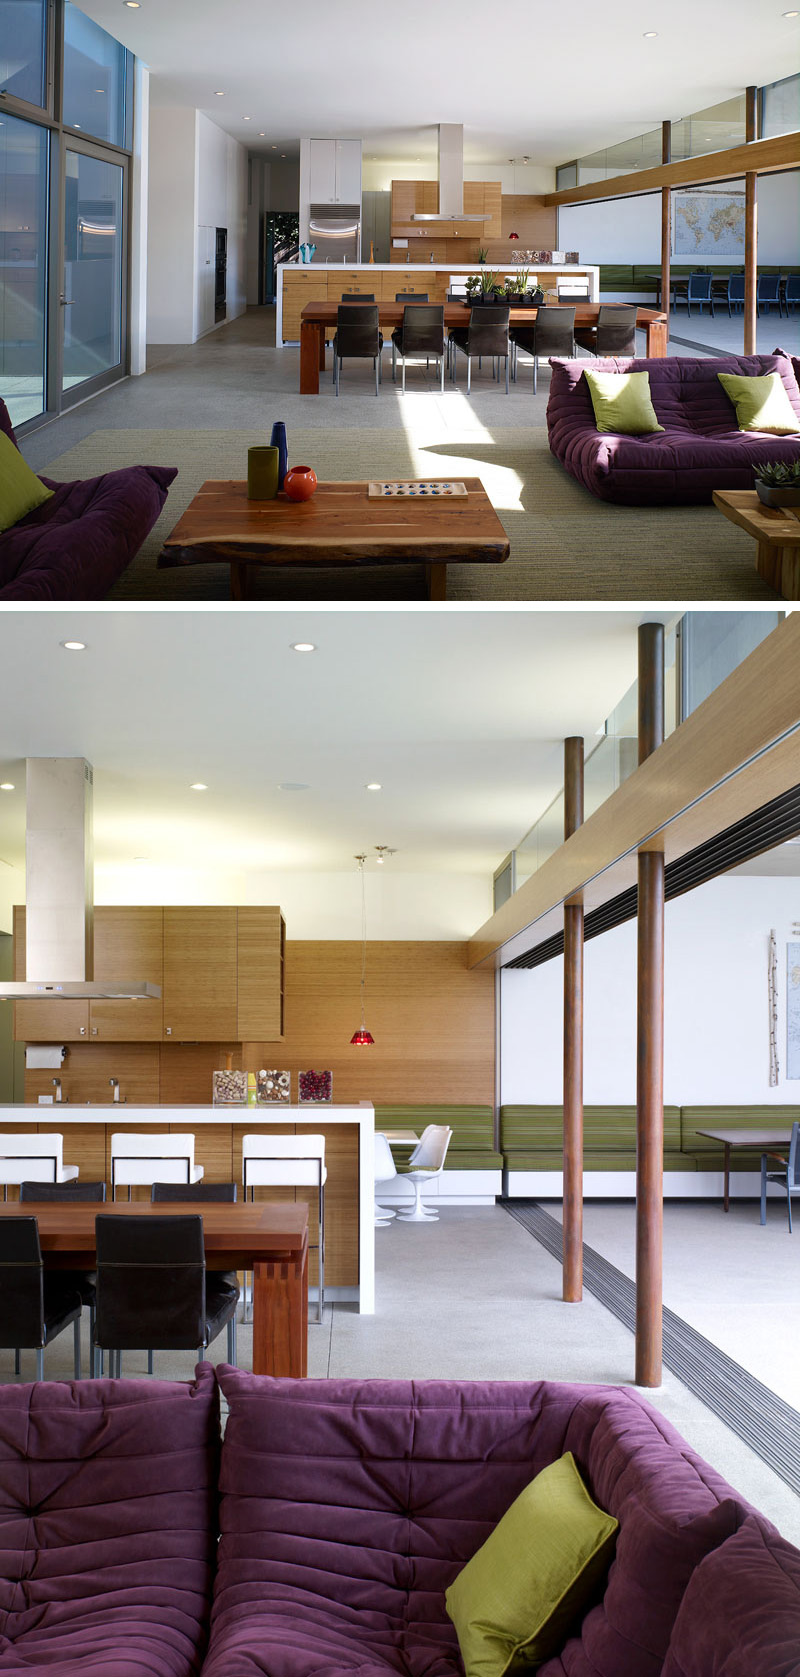 Inside this modern living room, sofas upholstered in purple fabric sit on top of a large green area rug.